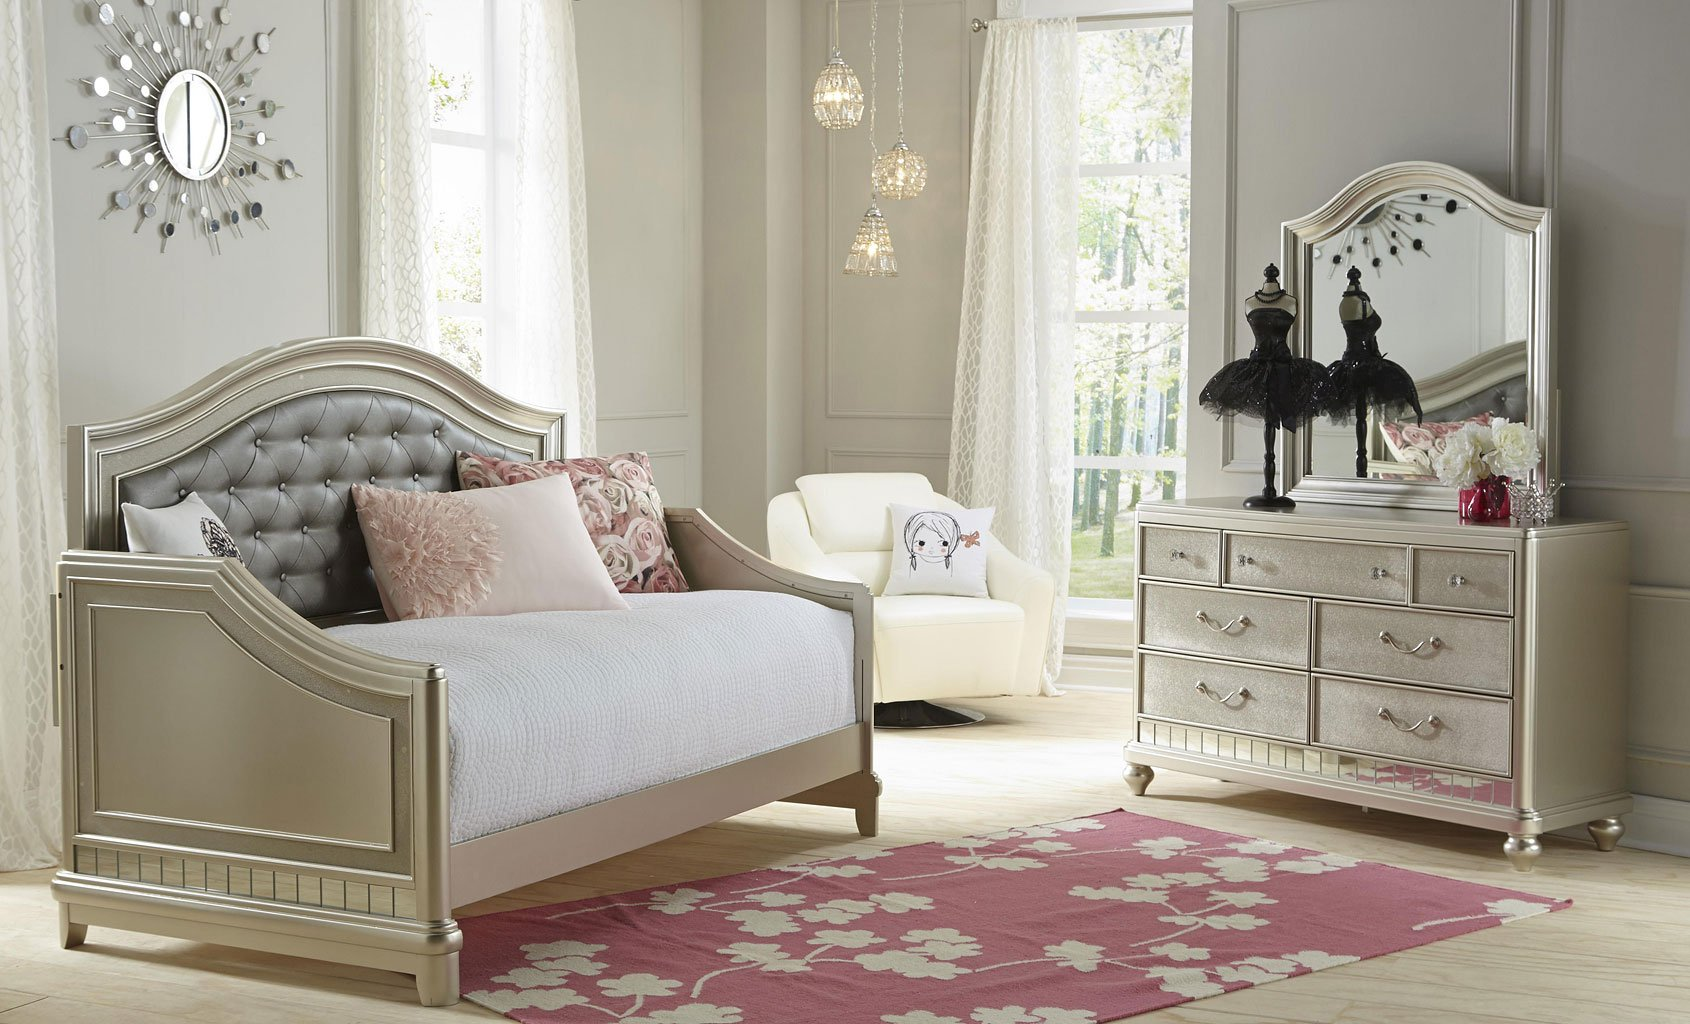 Diva Bedroom Set Ashley Furniture on samuel lawrence bedroom sets